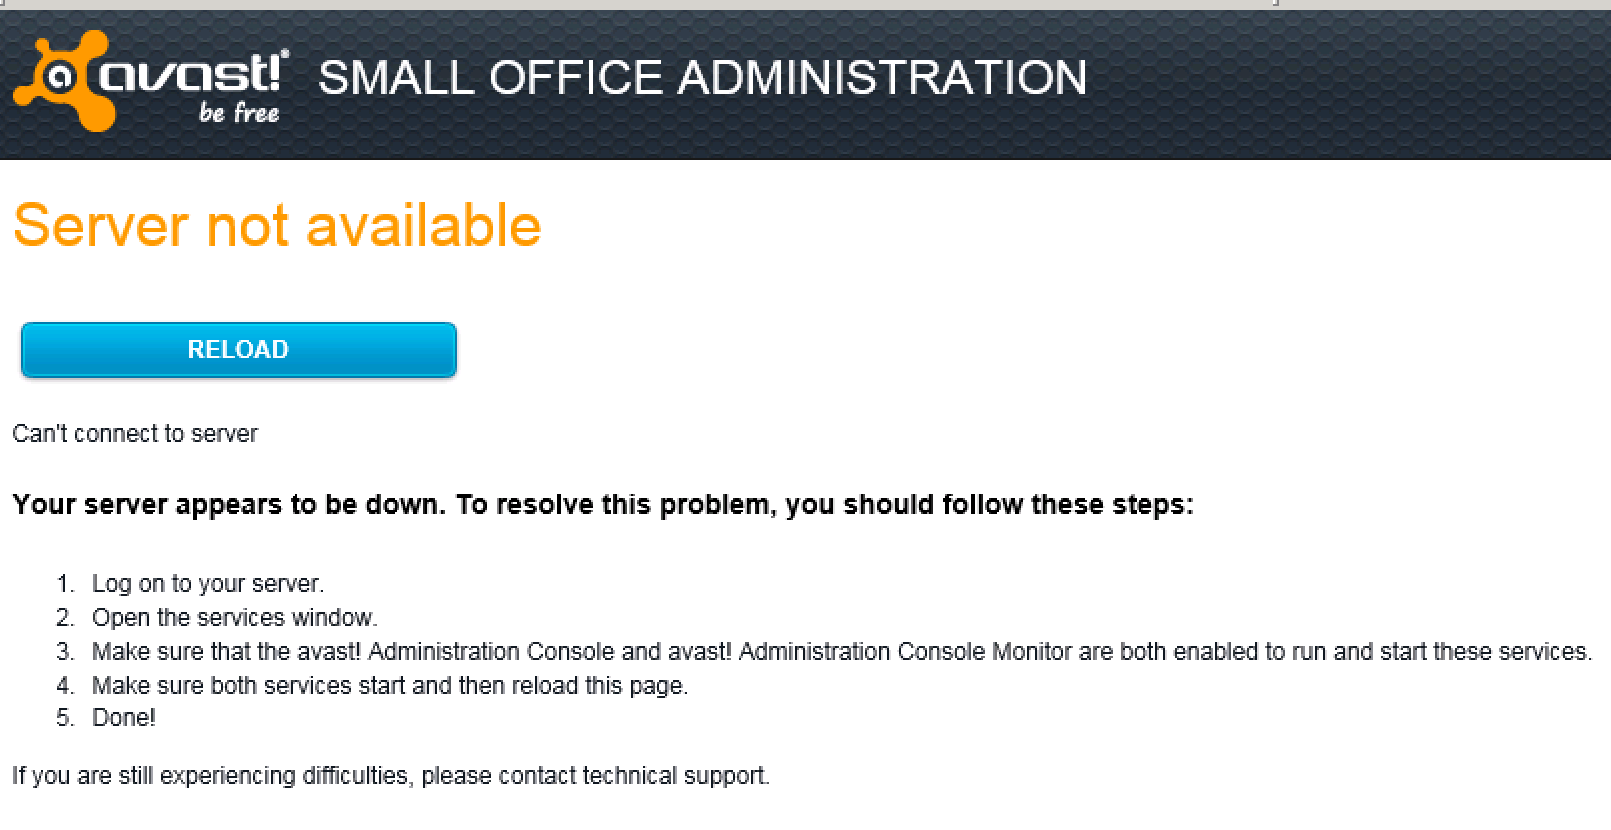 Avast Administration Console – Can't Connect to Server